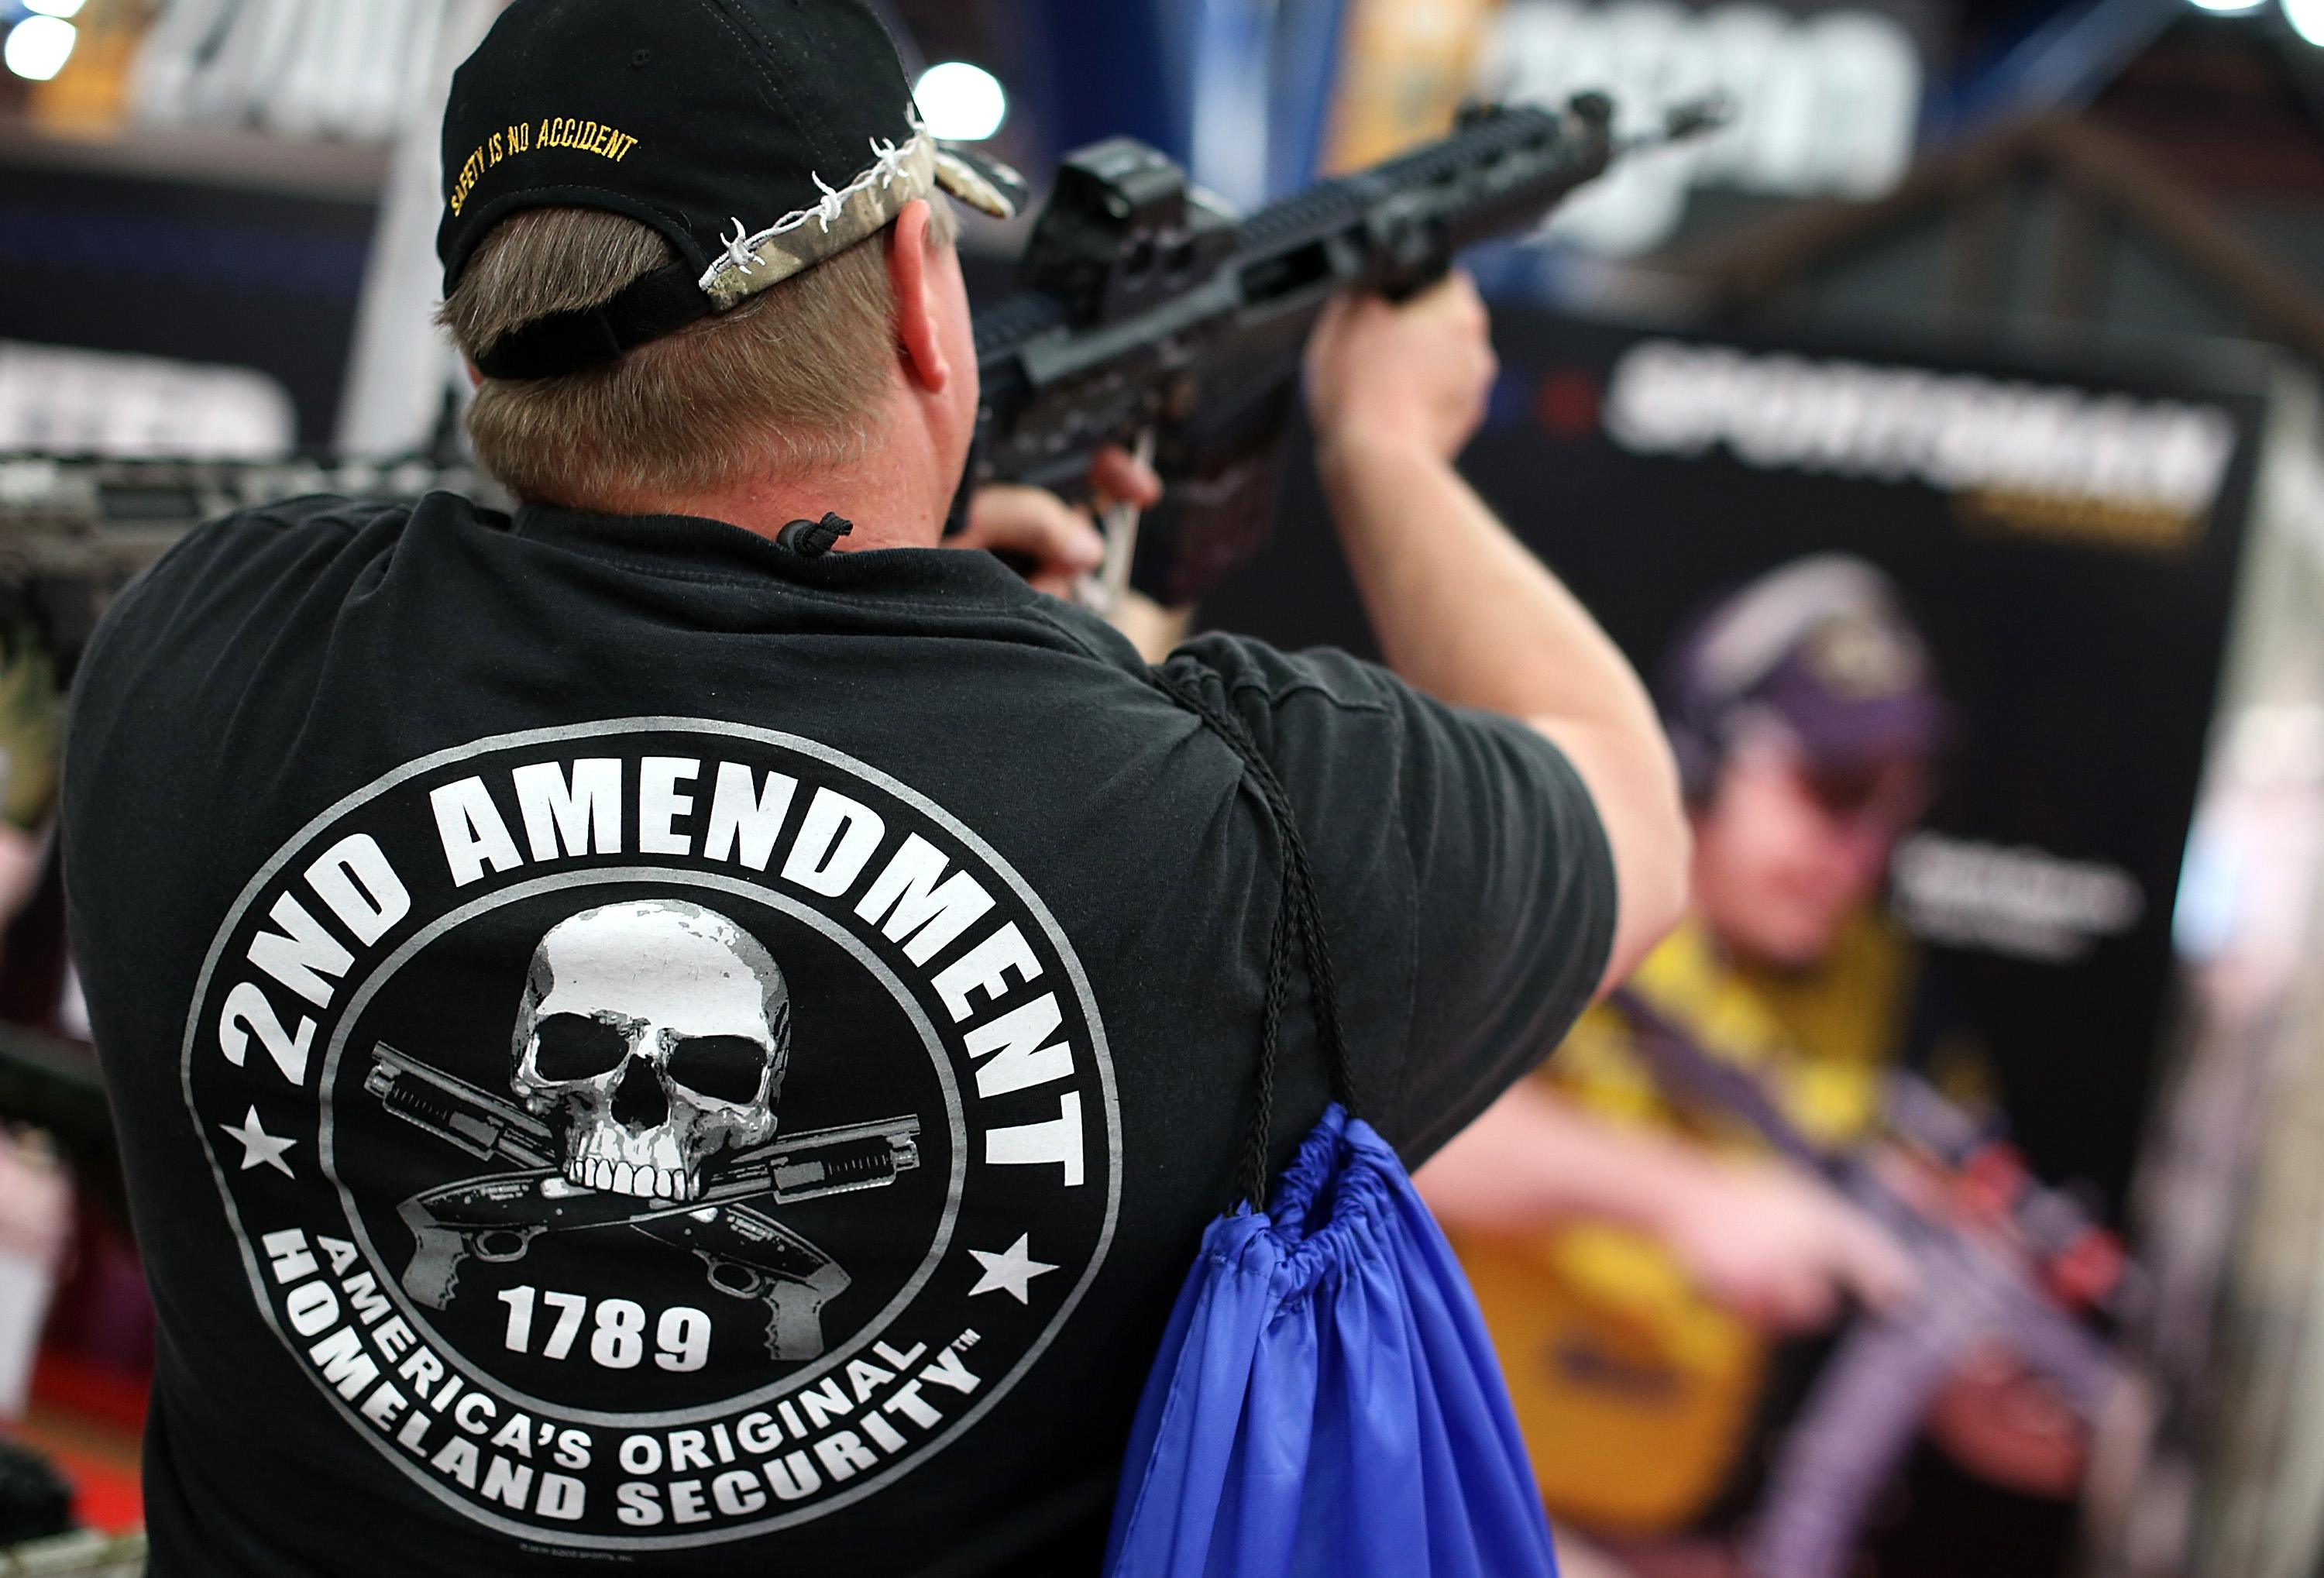 An attendee wears a 2nd amendment shirt while inspecting an assault rifle during the 2013 NRA Annual Meeting and Exhibits at the George R. Brown Convention Center